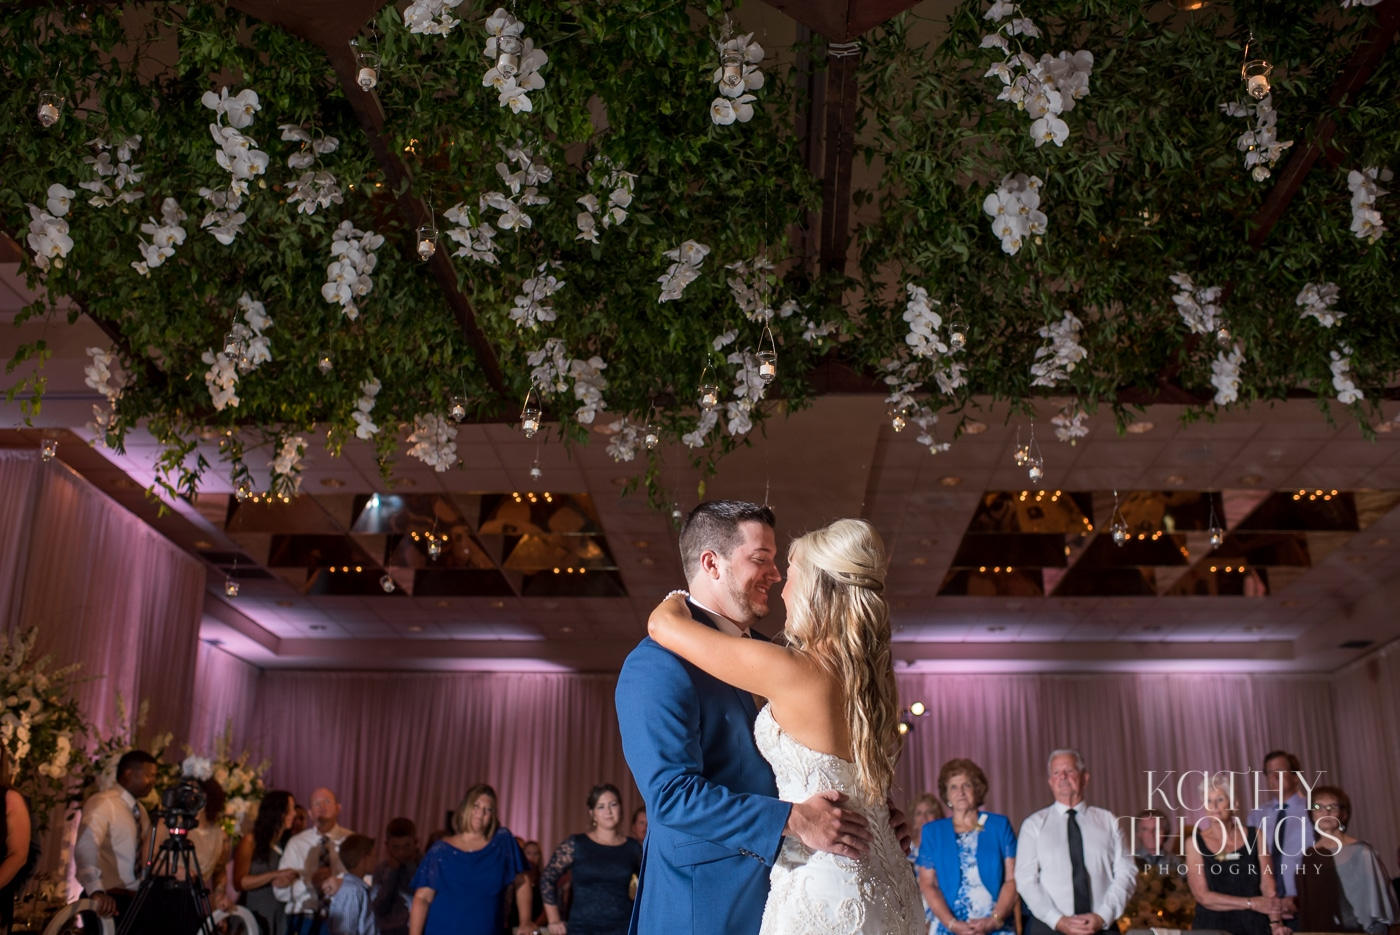 Bride and groom share first dance under ceiling hung with wisteria